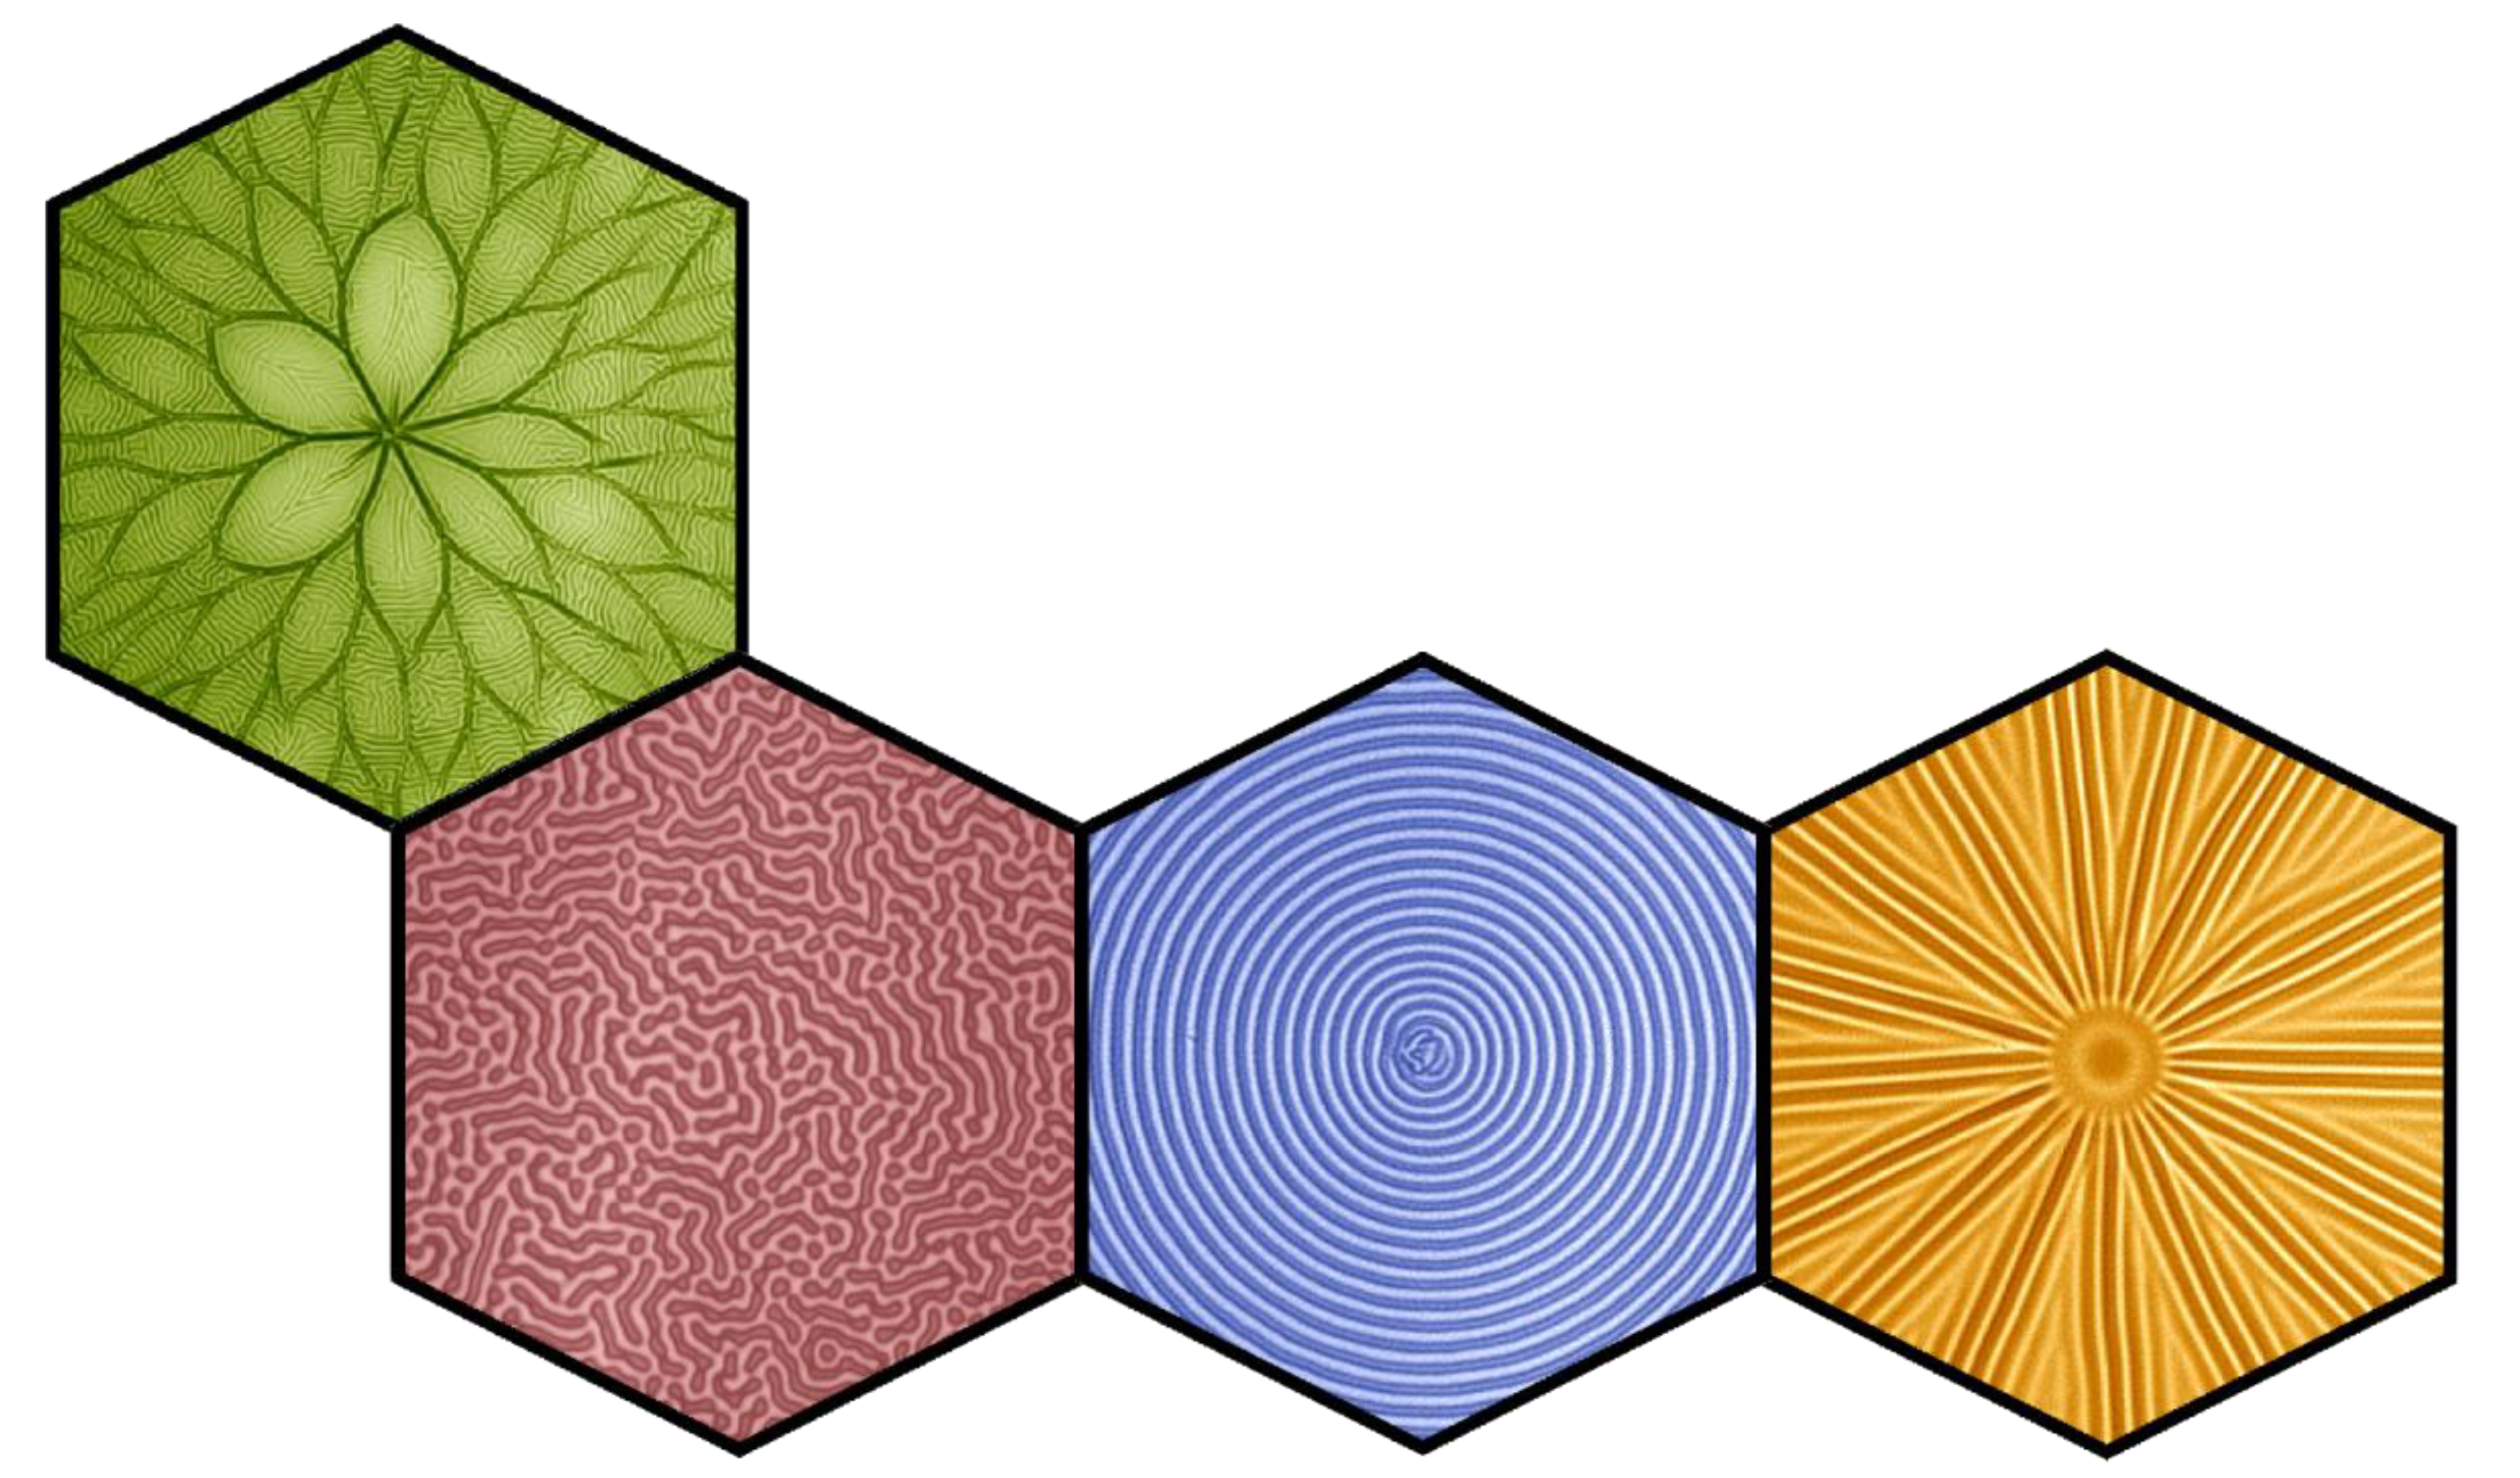 Collage of various filtration membranes that have been wrinkled to reveal their mechanical properties. The patterns include spokes, a flower, concentric rings, and random wrinkles.